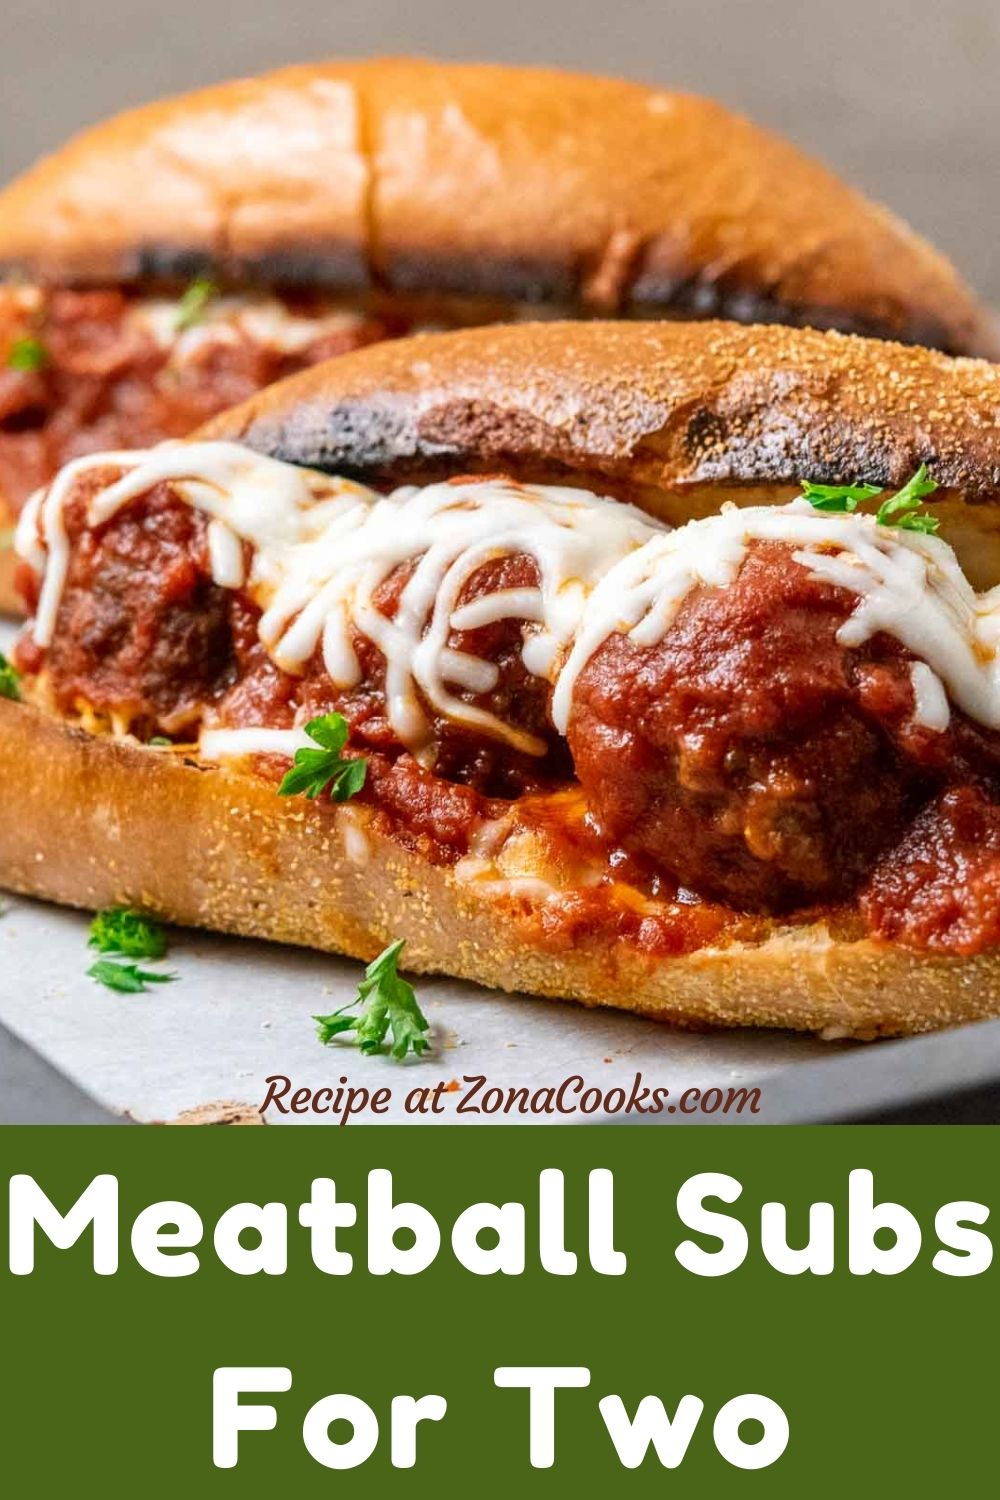 two meatball subs on a tray and text reading recipe at zonacooks.com meatball subs for two.